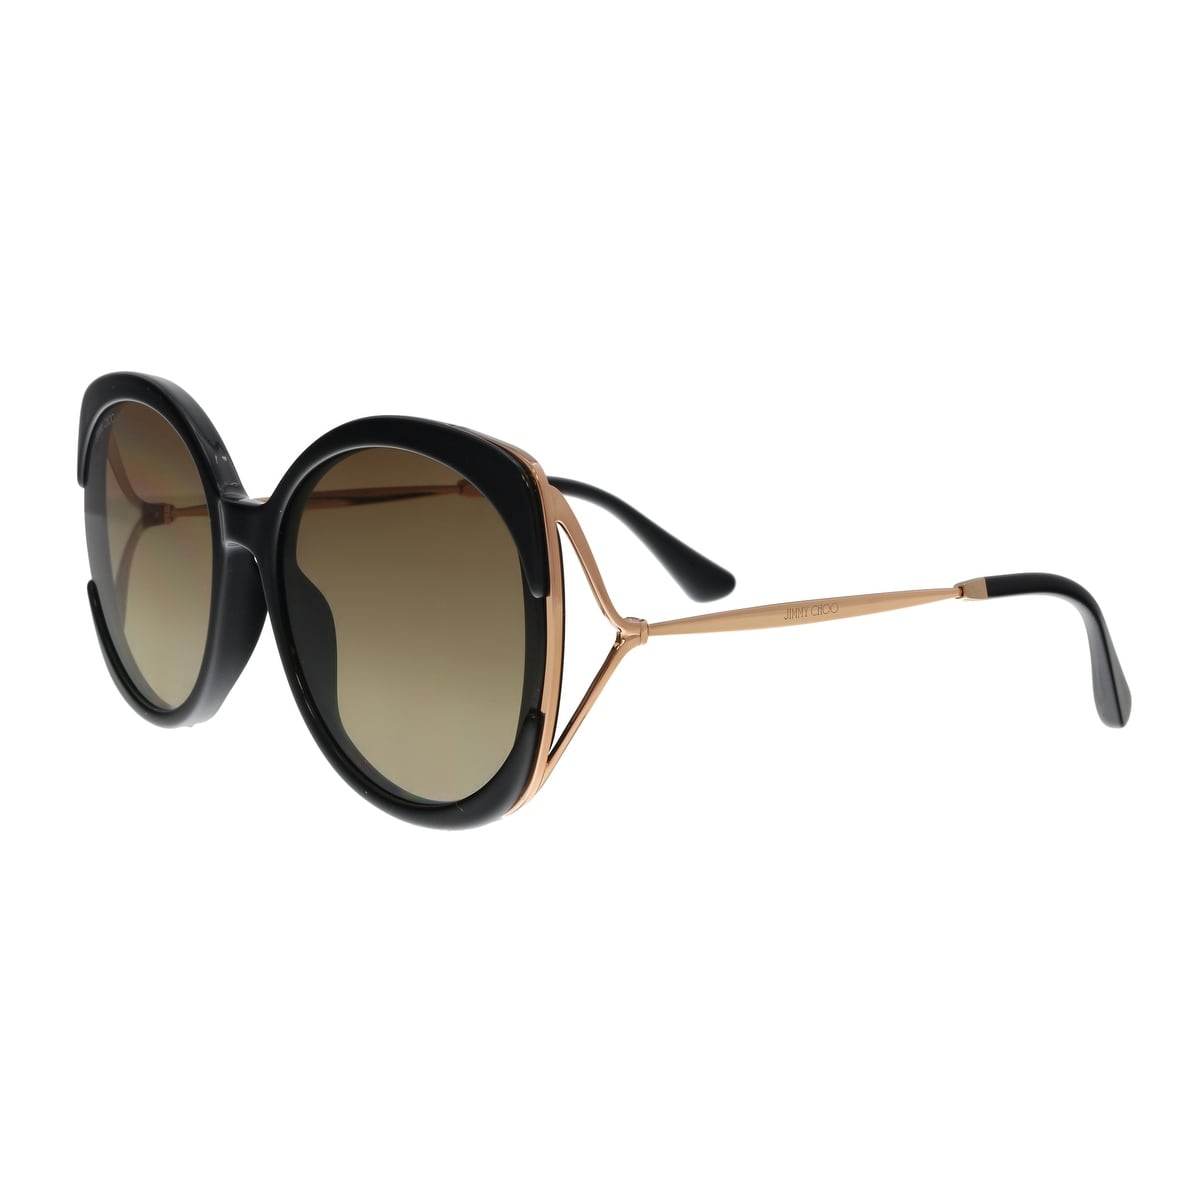 8bb6f520f0f0 Jimmy Choo Sunglasses | Shop our Best Clothing & Shoes Deals Online at  Overstock